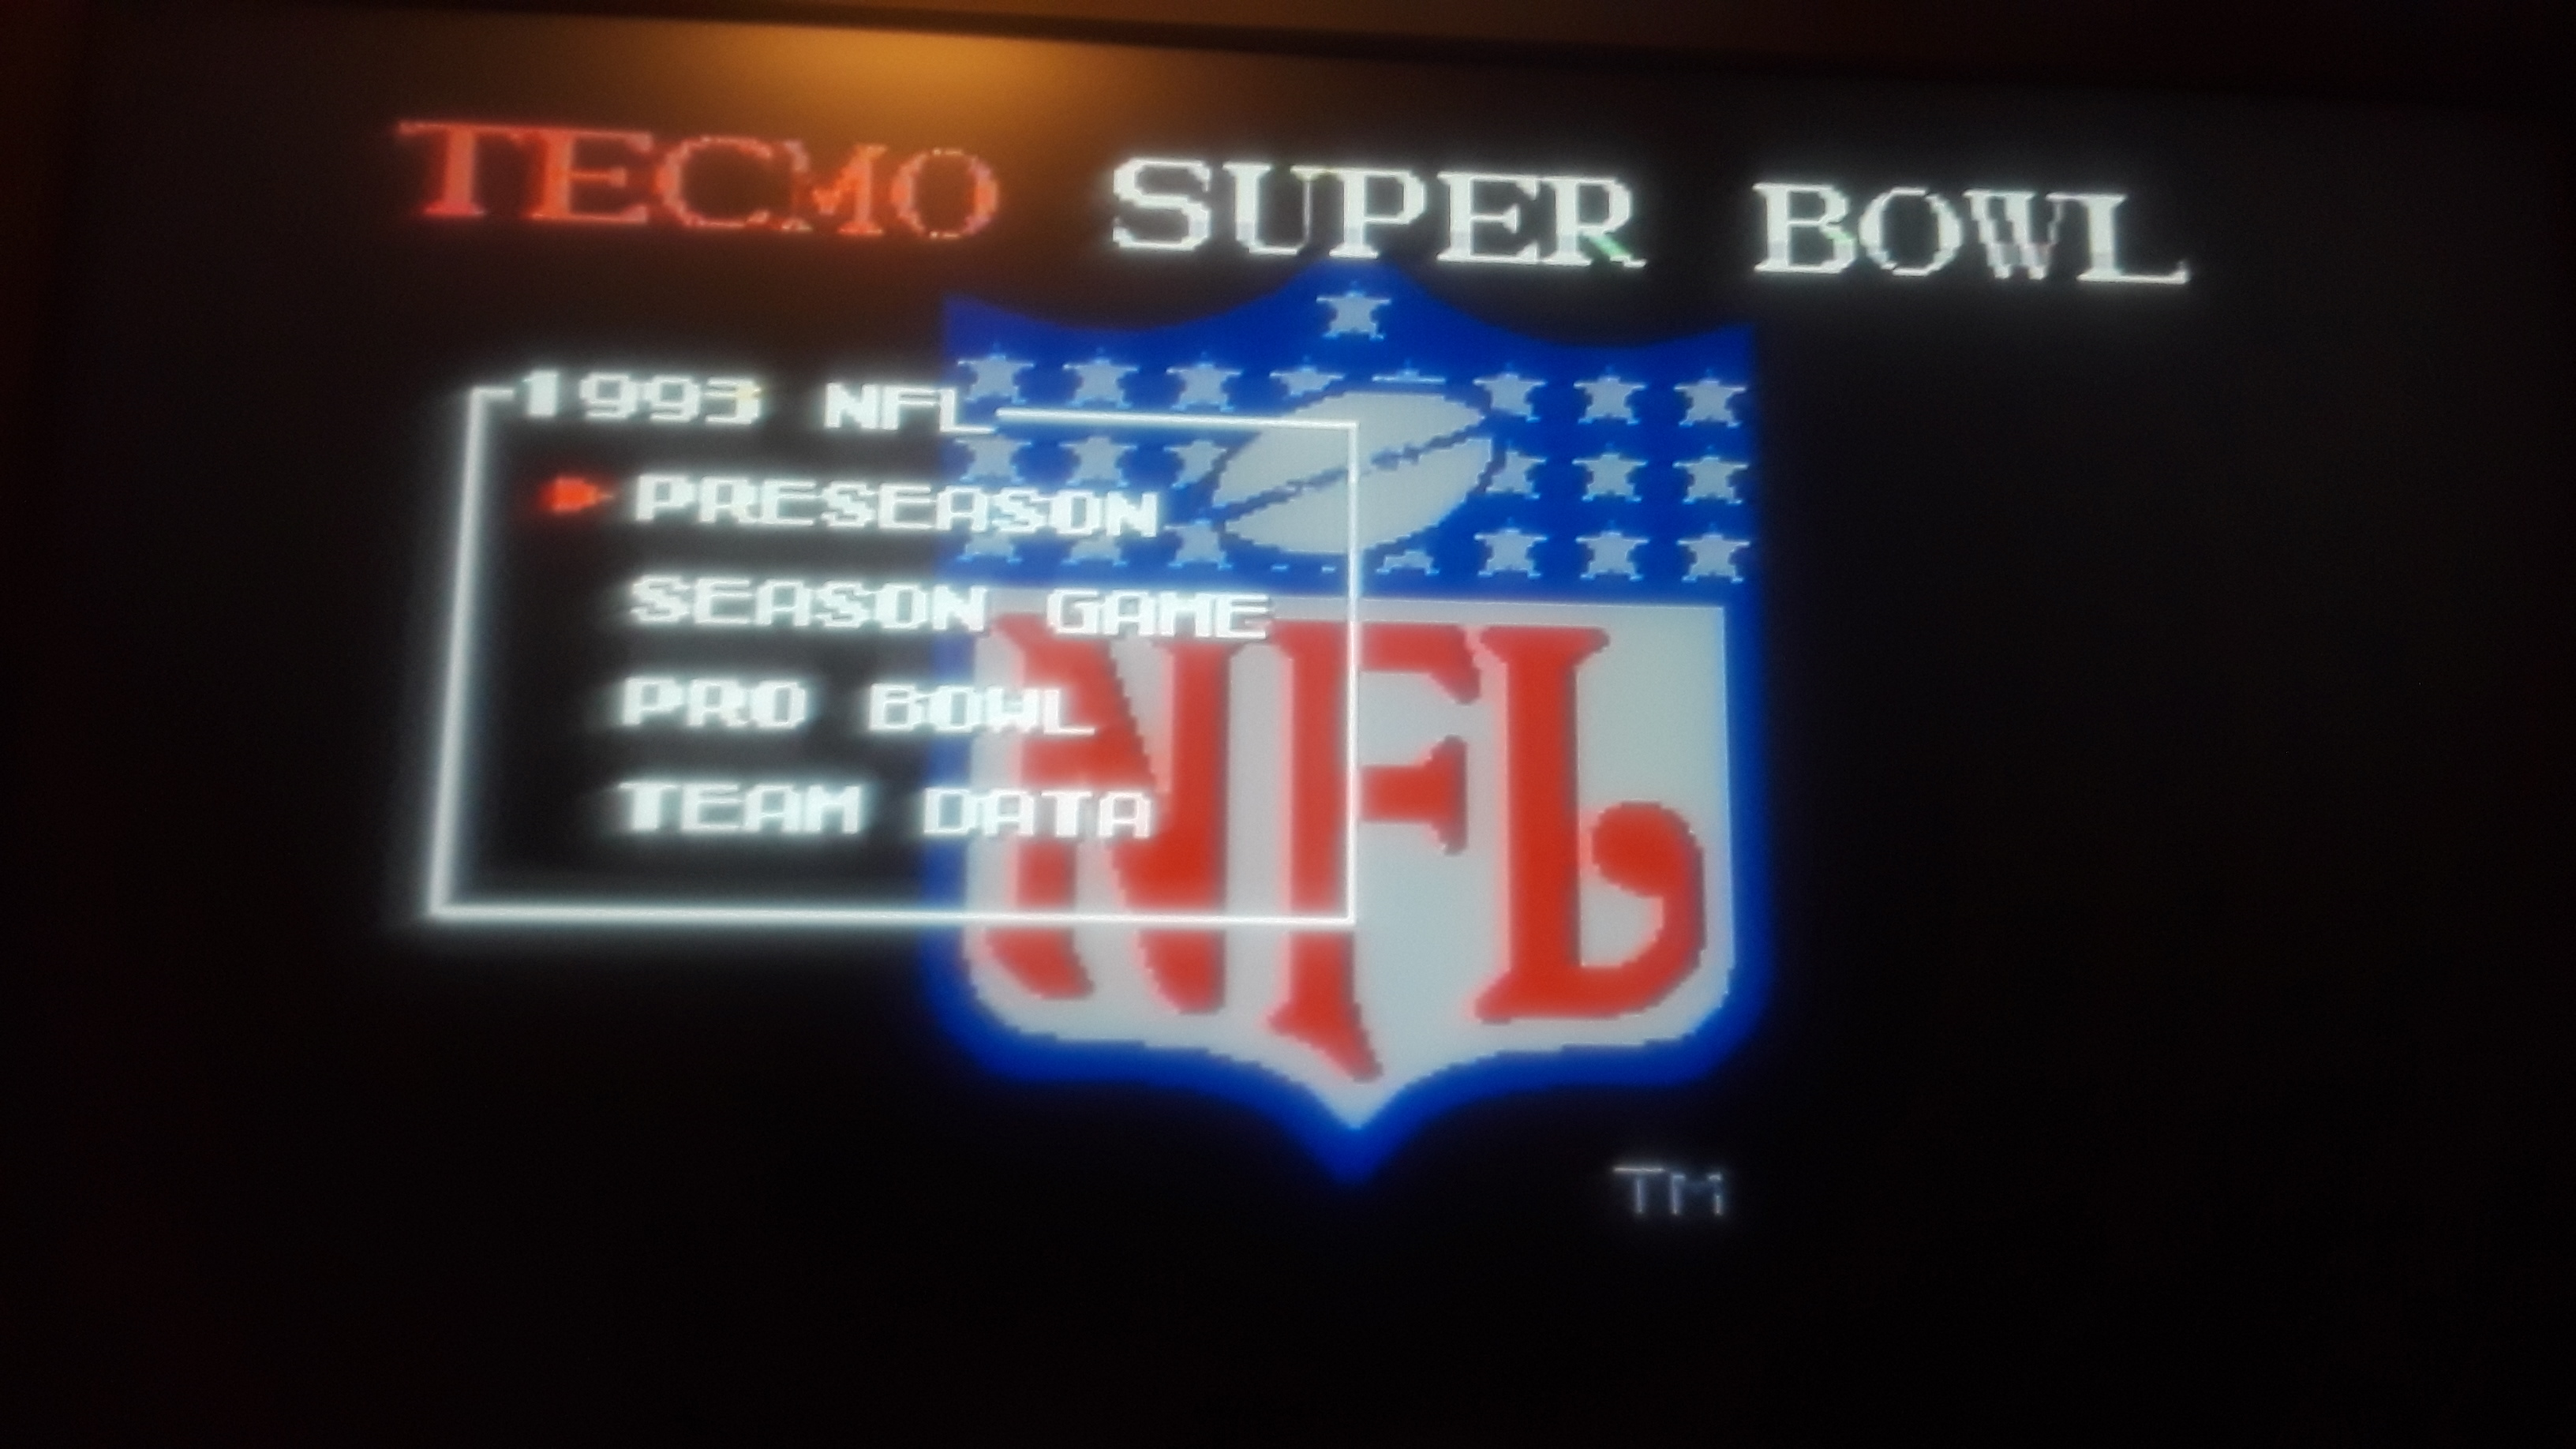 Tecmo Super Bowl [Most Passing Yards] [Preseason] 731 points